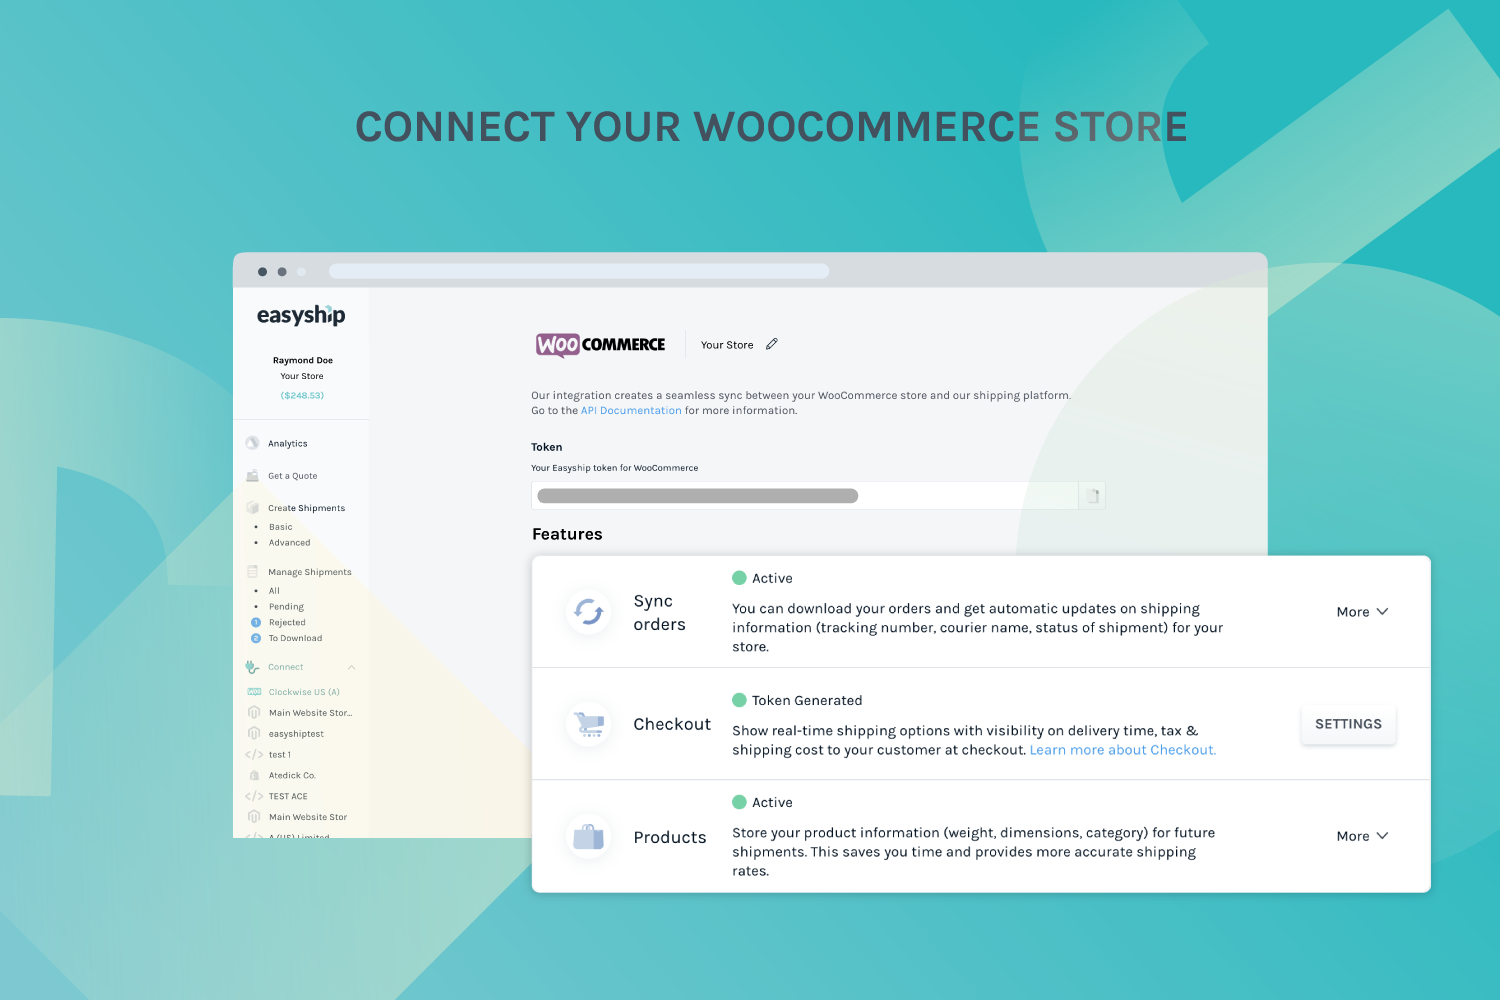 Connect your WooCommerce store